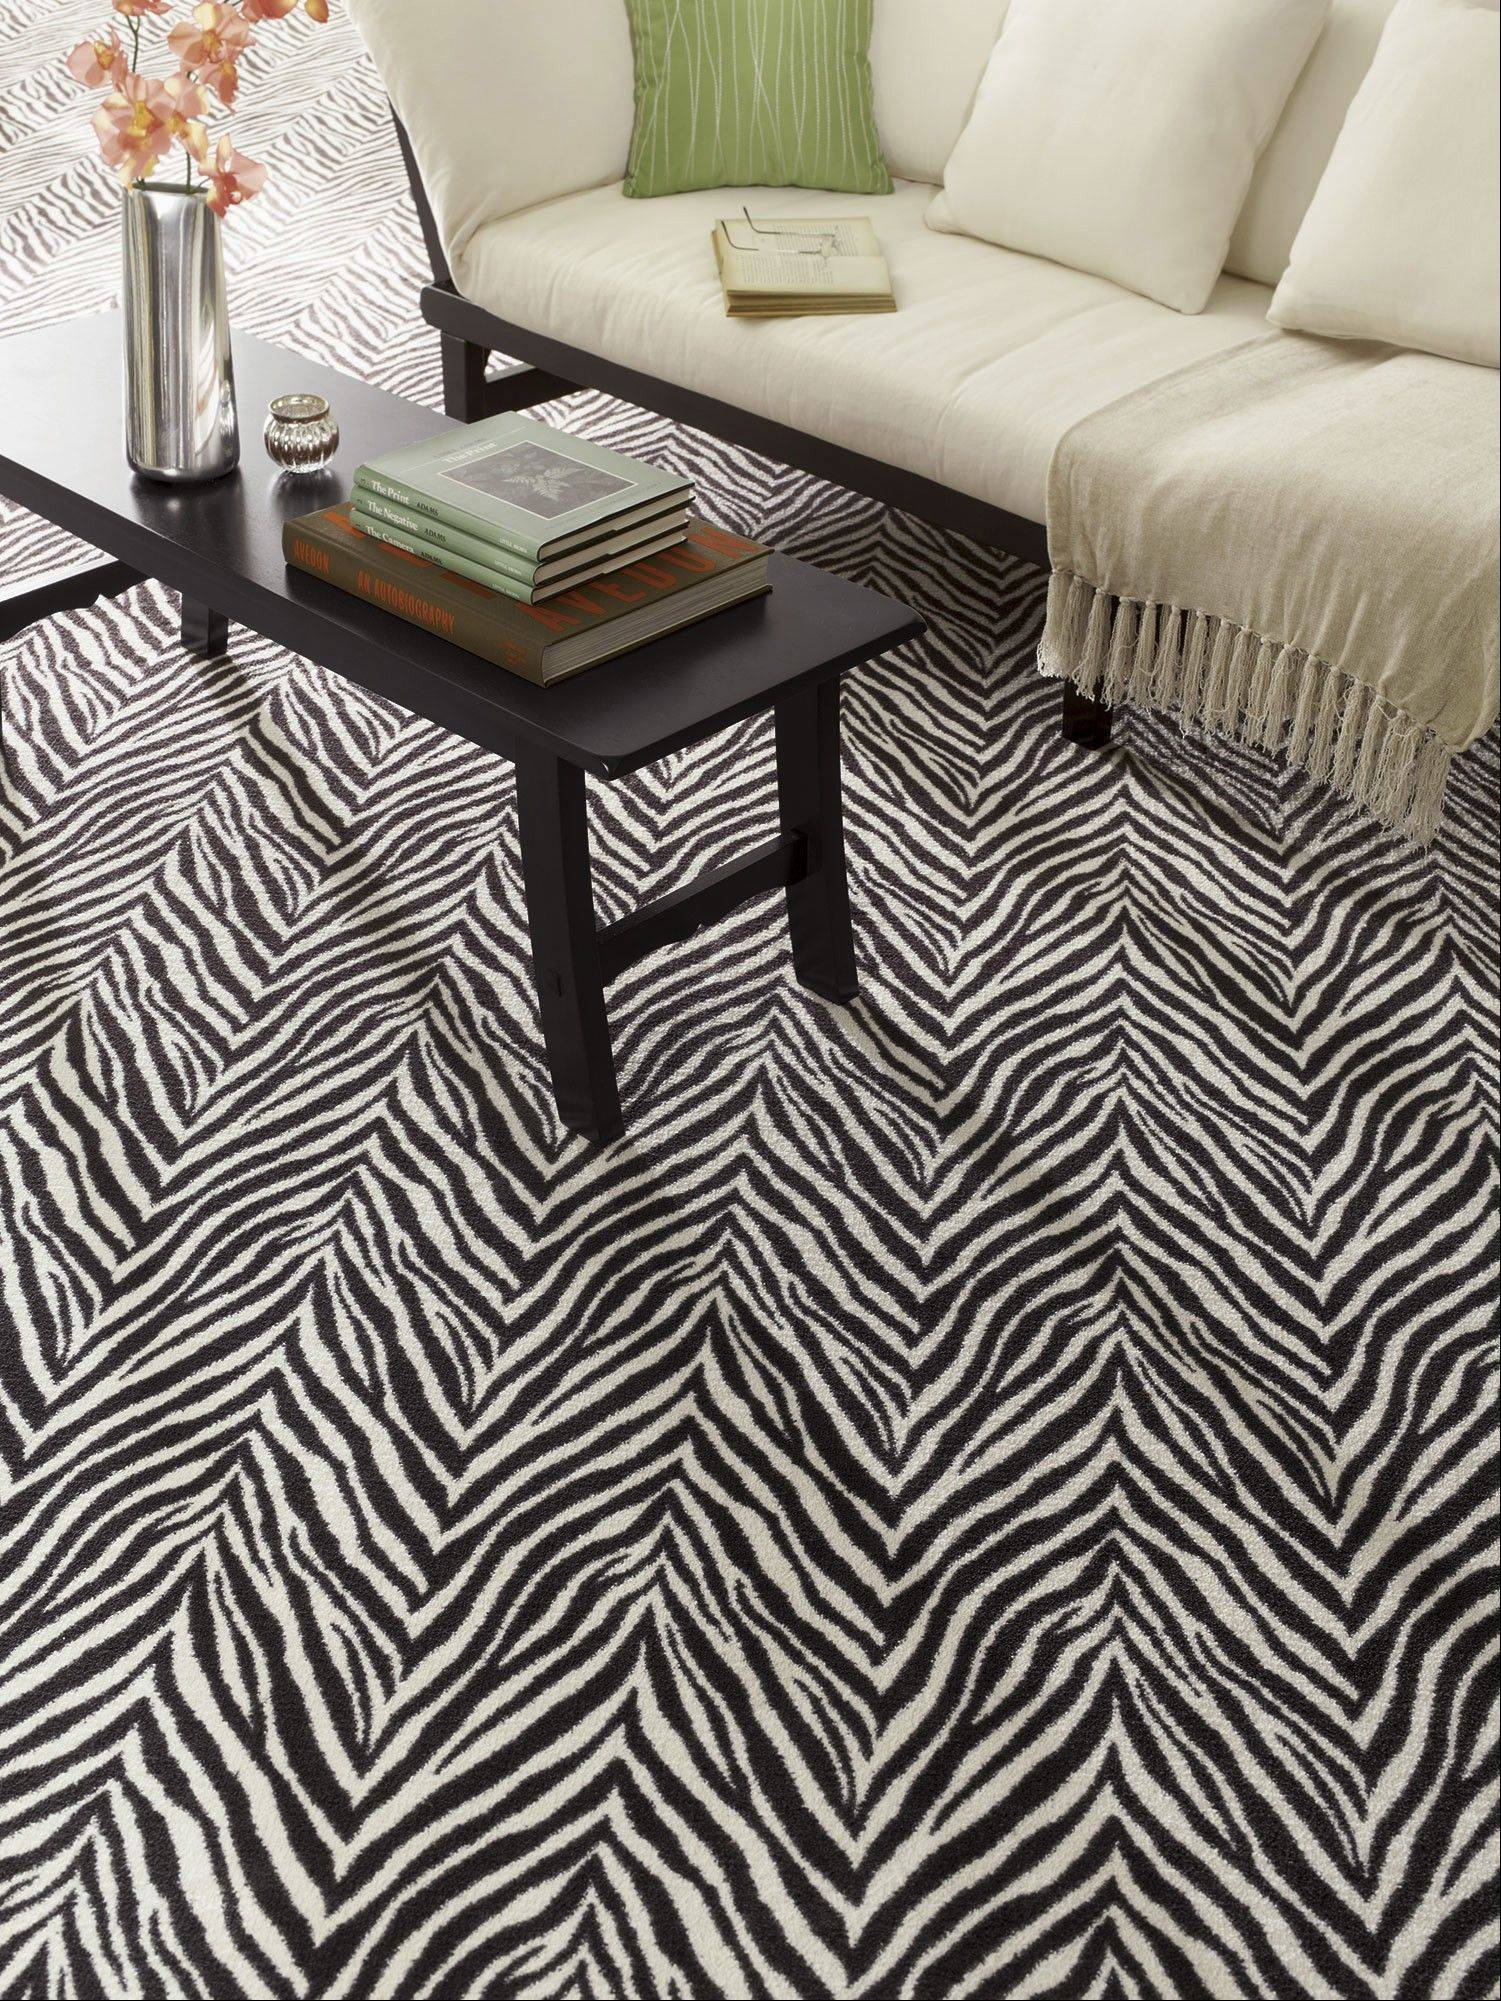 Milliken's Exotic Journey carpet allows you to have the animal trend wall-to-wall on your floor or as a rug that can be cut to your exact specifications by a local carpet store.